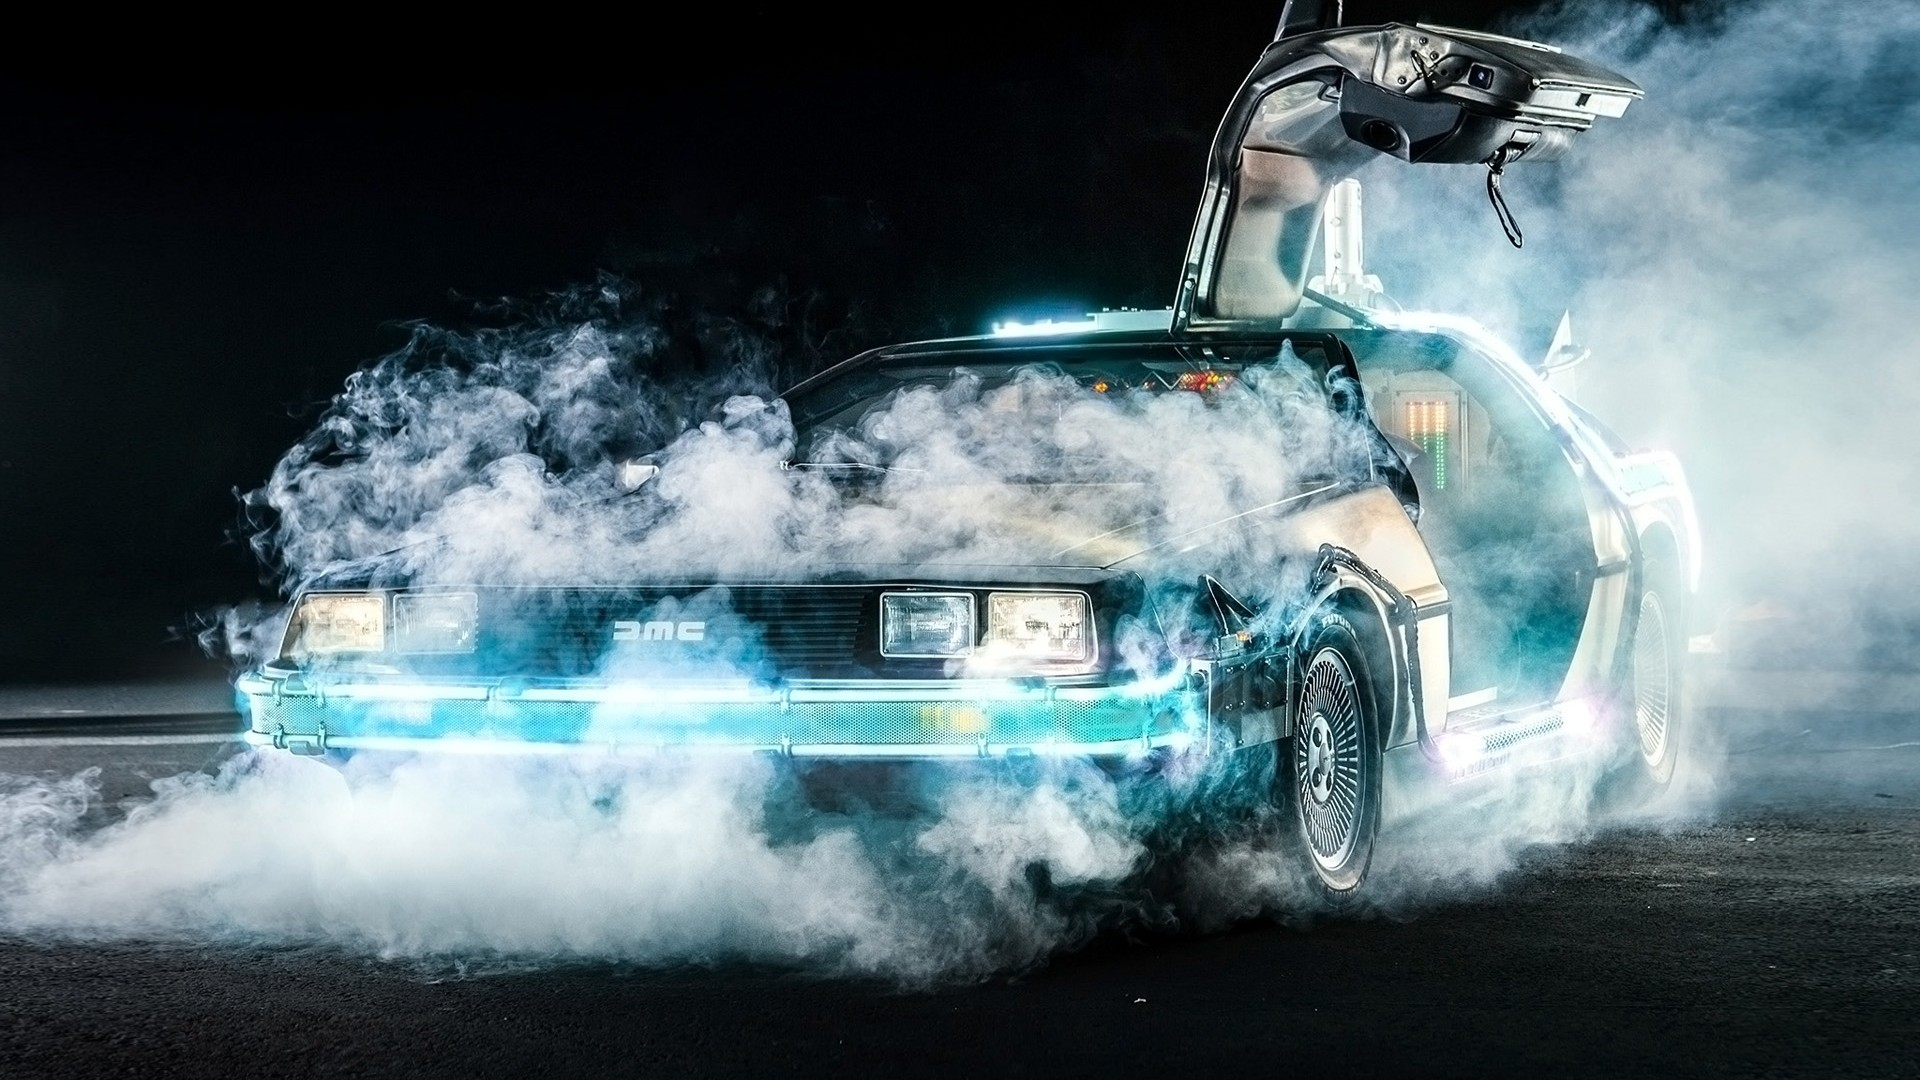 Back To The Future DeLorean Time Travel Car Movies Smoke 1920x1080